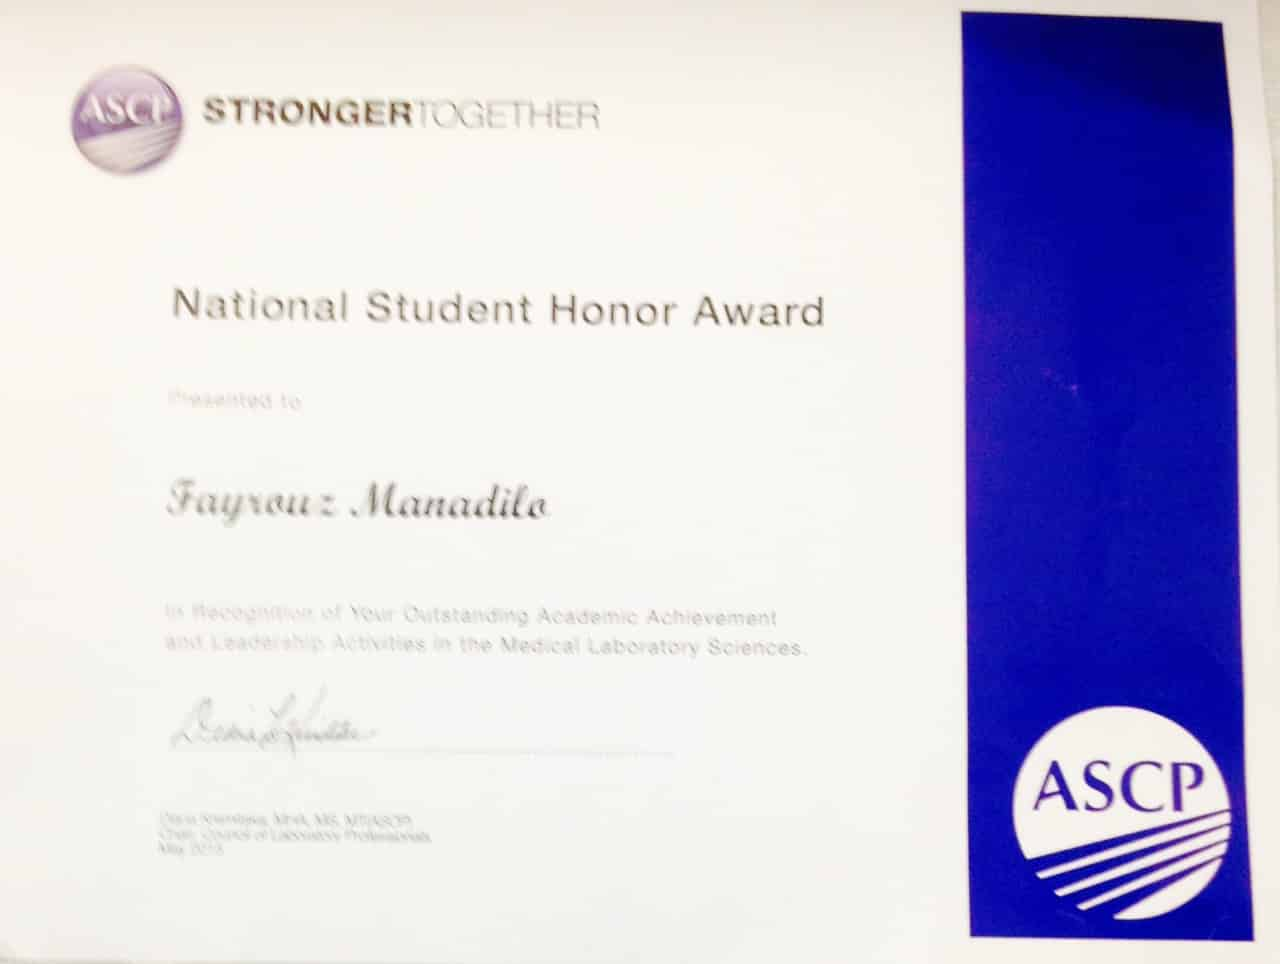 Orlando Histotechnology Students Receive the National Student Honor Award